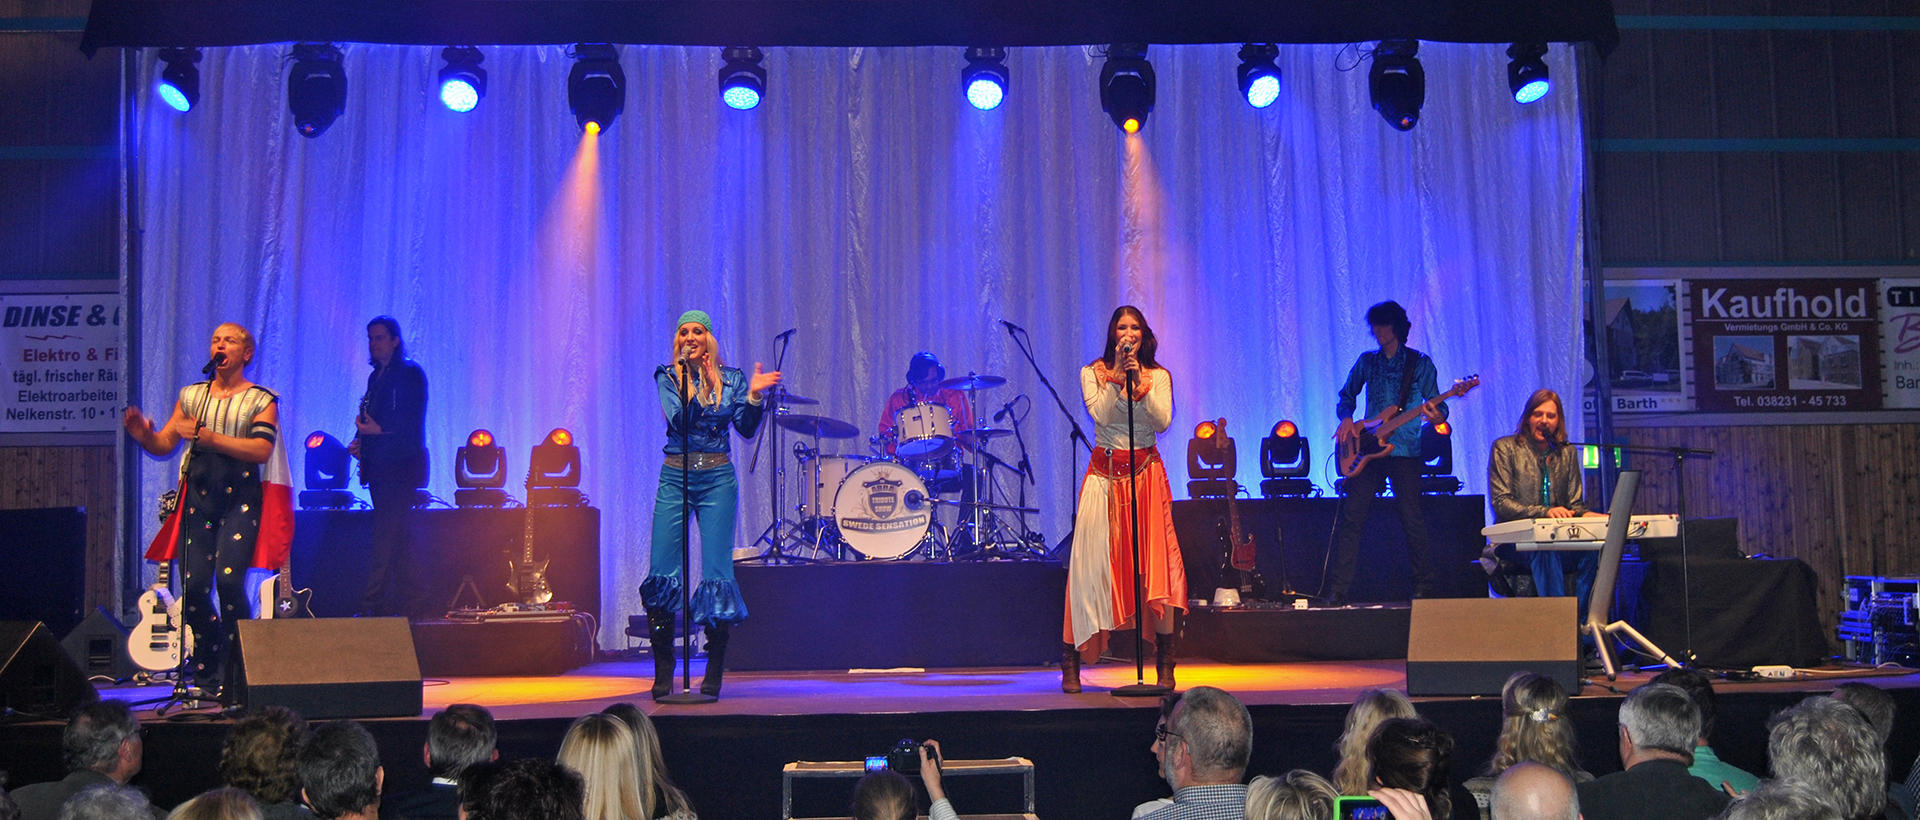 events rückblick ostsee revue 2015 the abba tribute show events in vorpommern